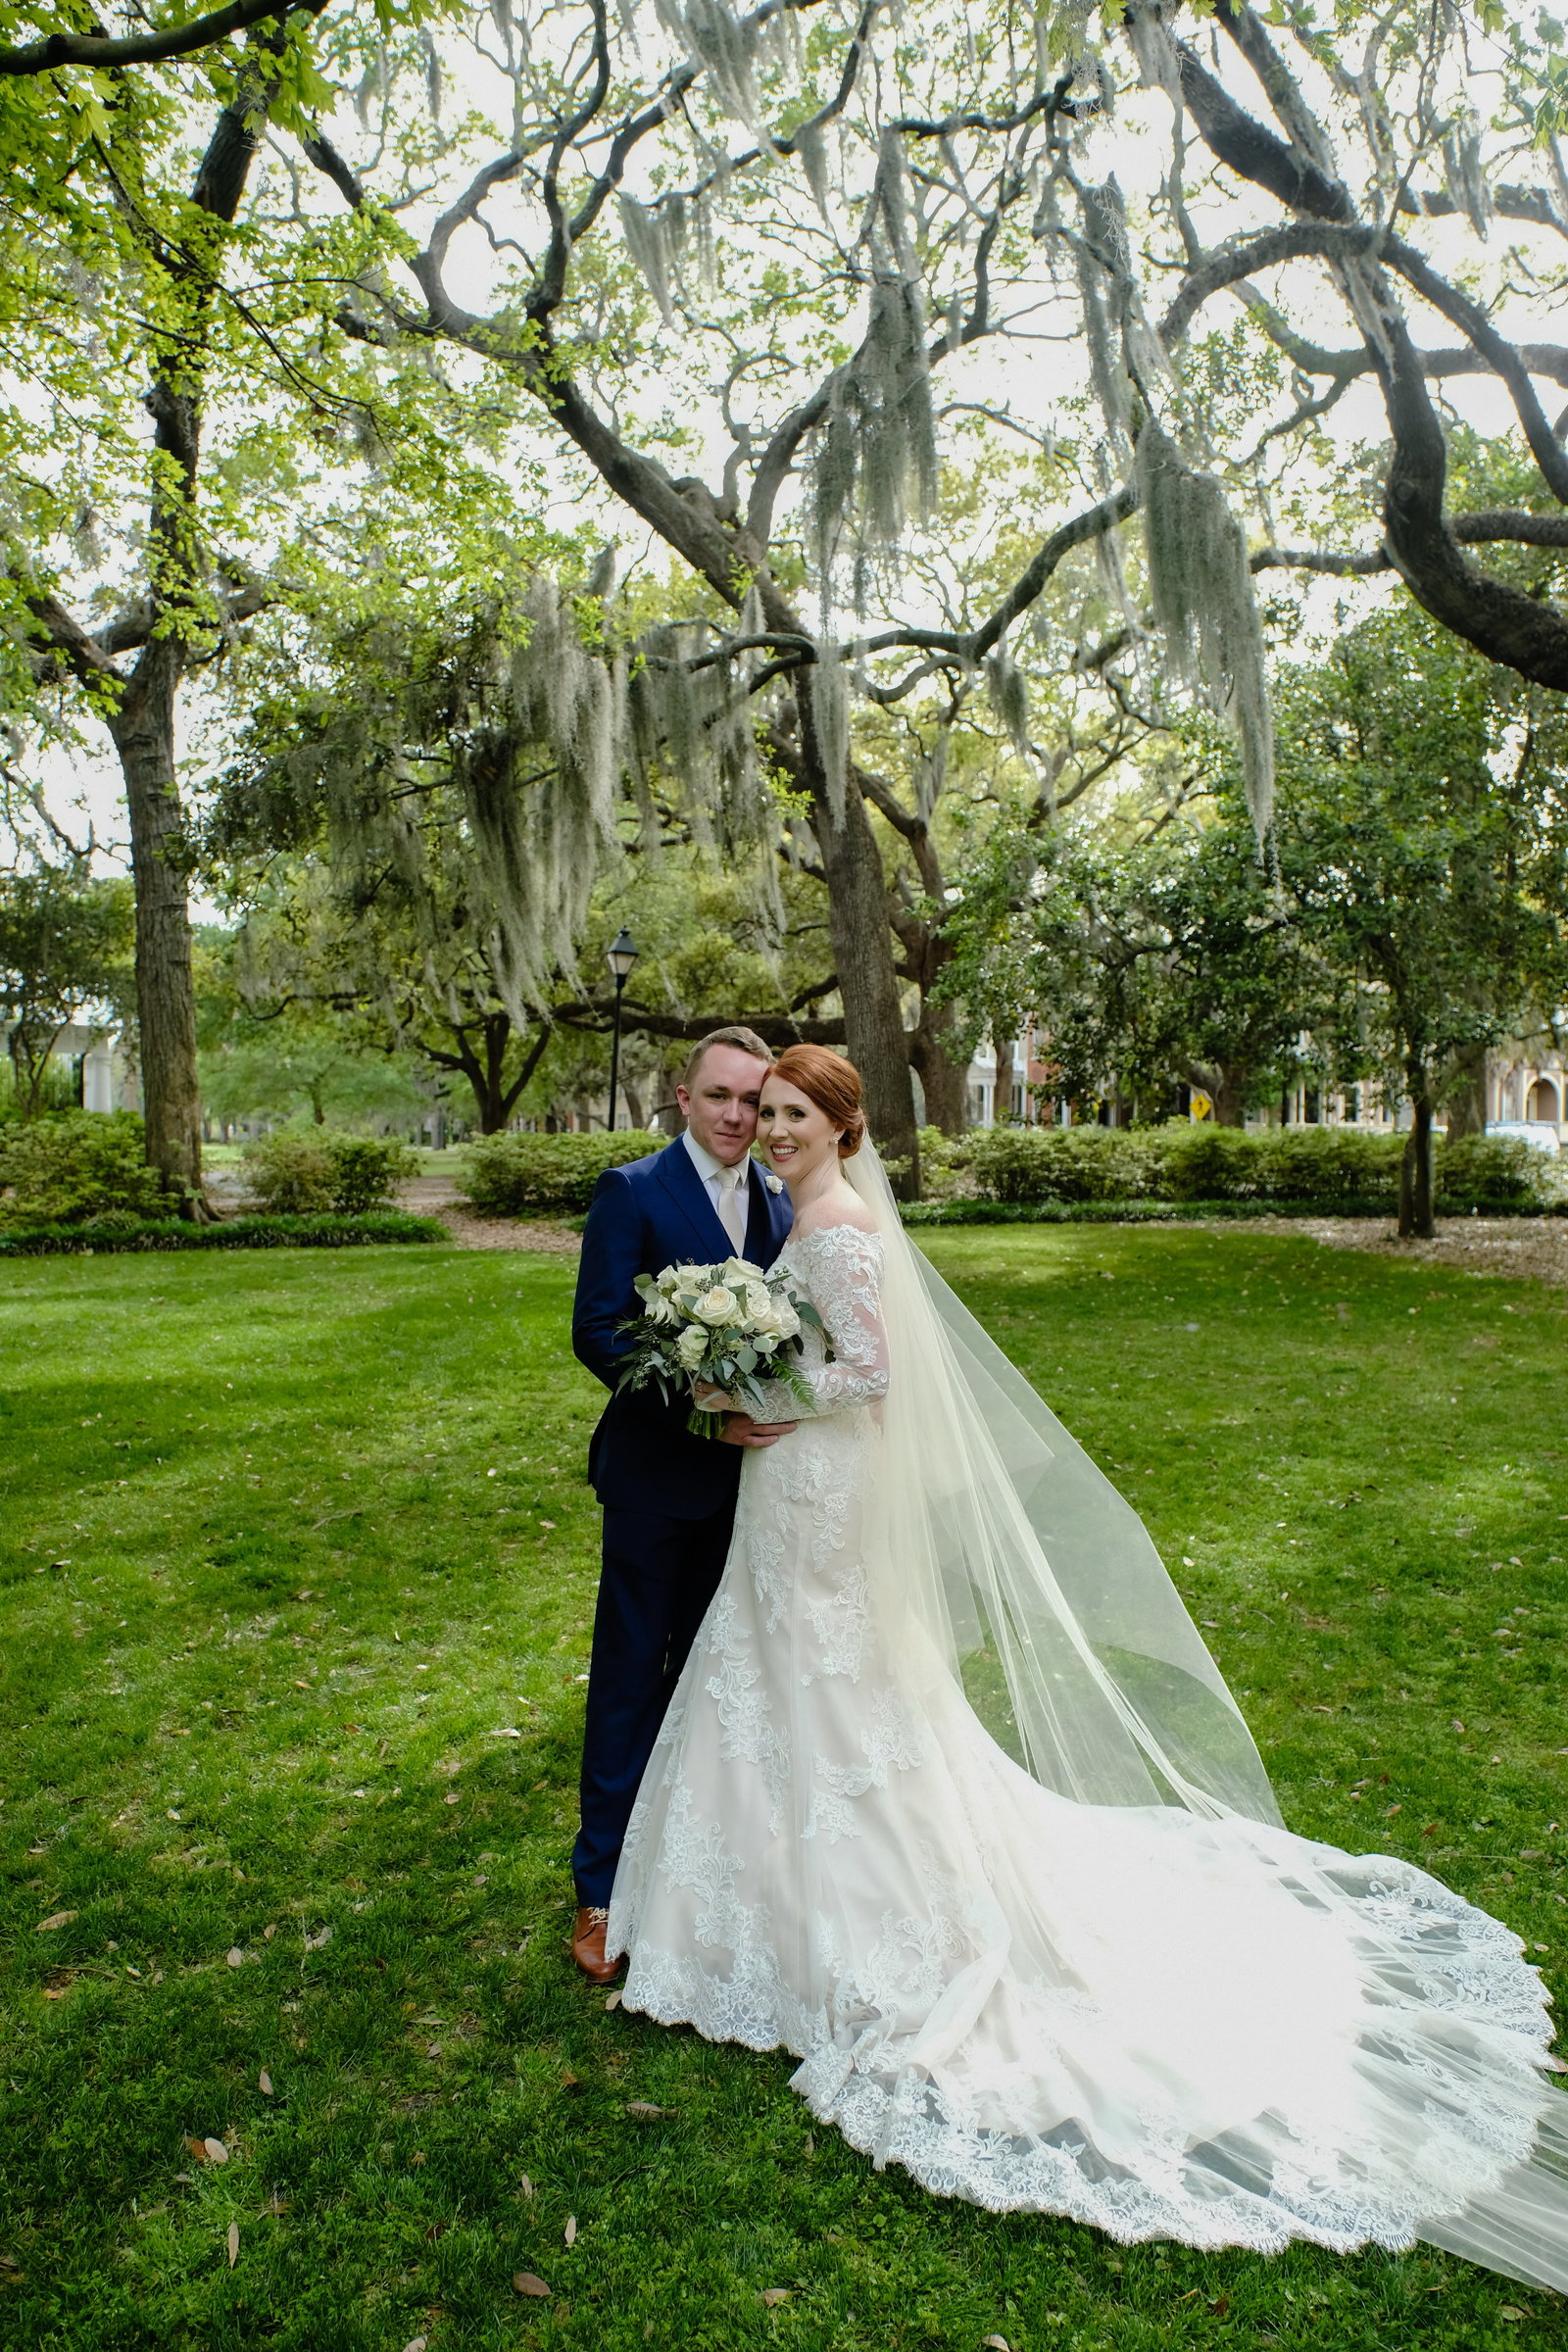 Kathleen & Thomas, Bobbi Brinkman Photography, Savannah Wedding